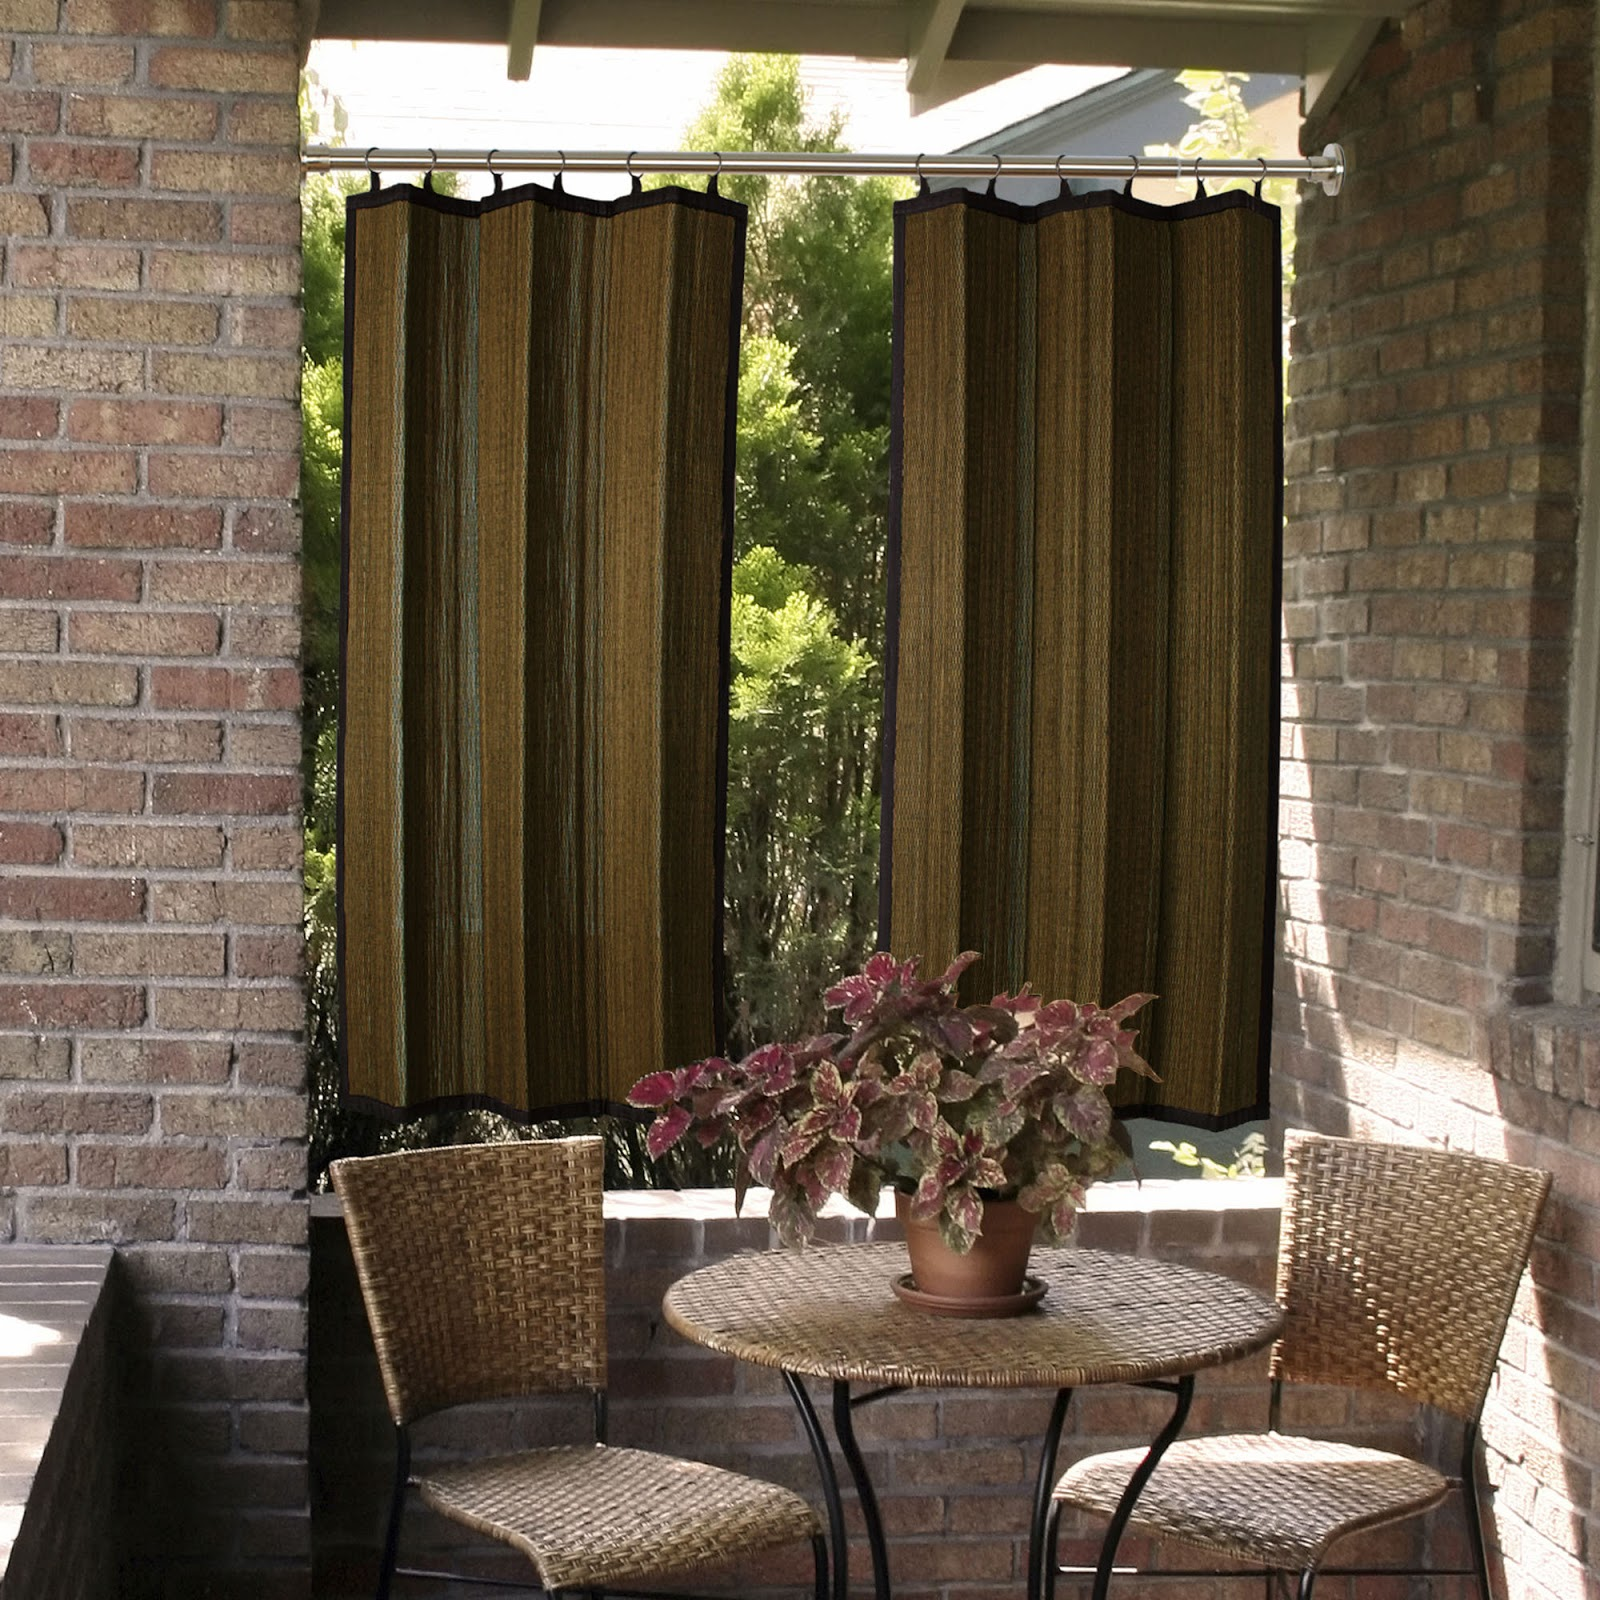 Bamboo Curtains For Doors Bamboo Fencing for Outdoors